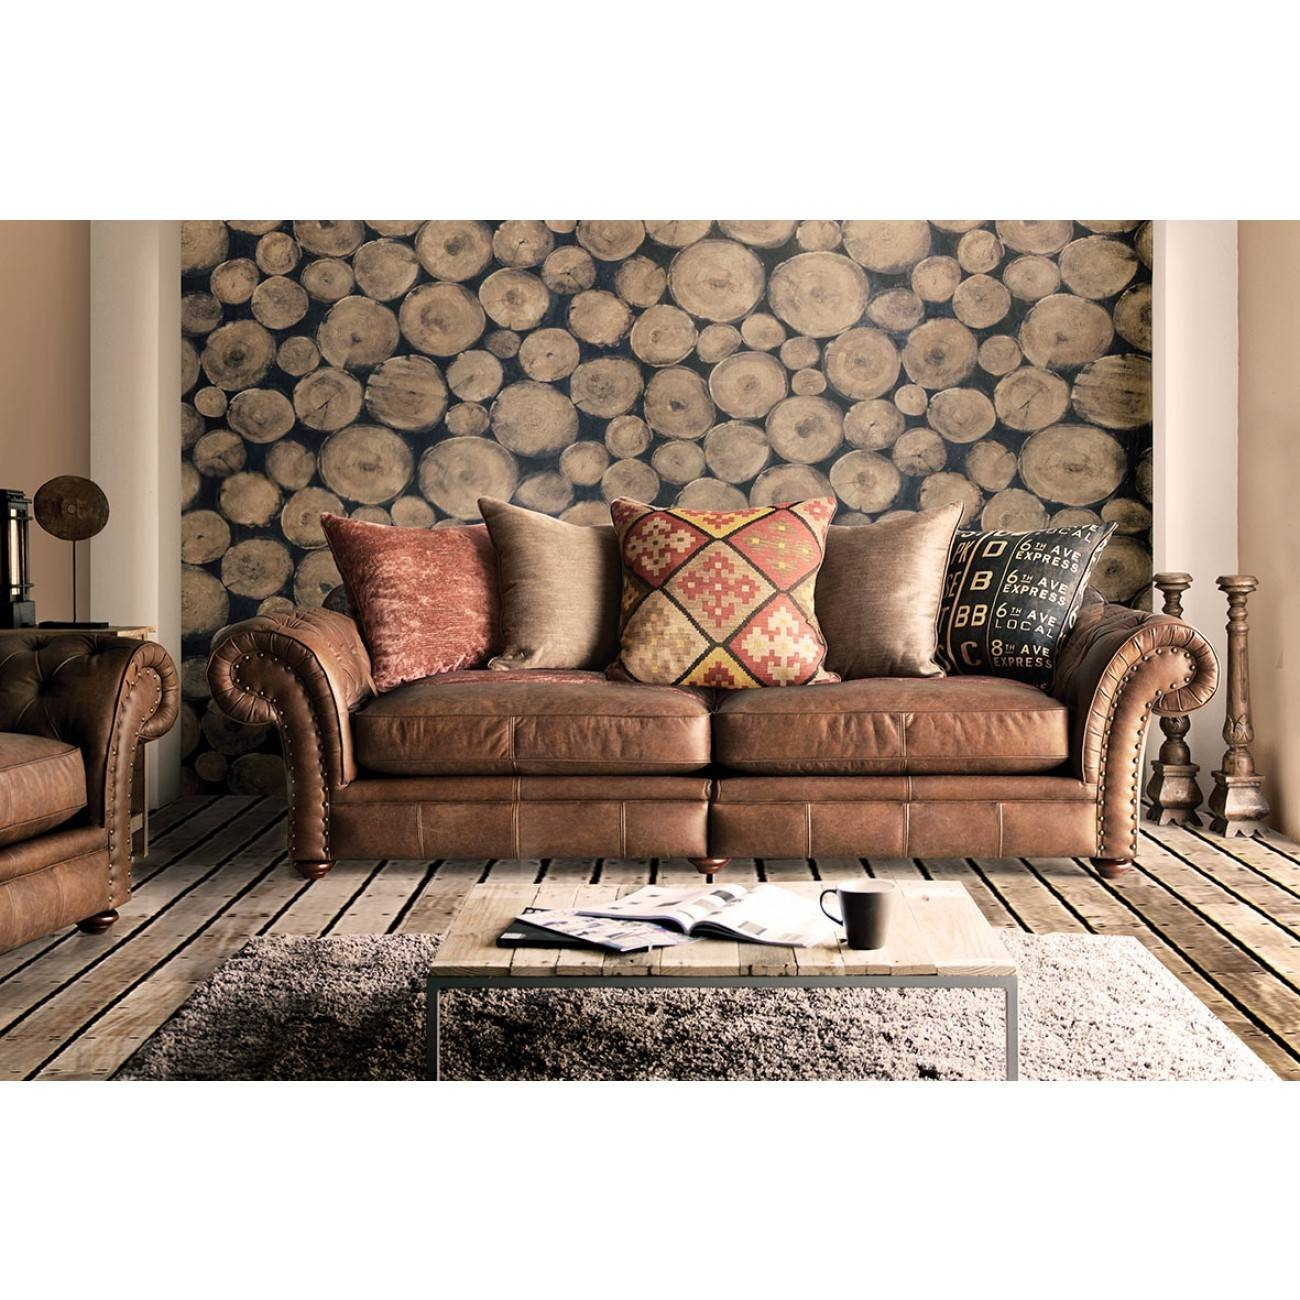 Leather And Fabric Sofas 61 With Leather And Fabric Sofas throughout Leather And Cloth Sofa (Image 13 of 25)